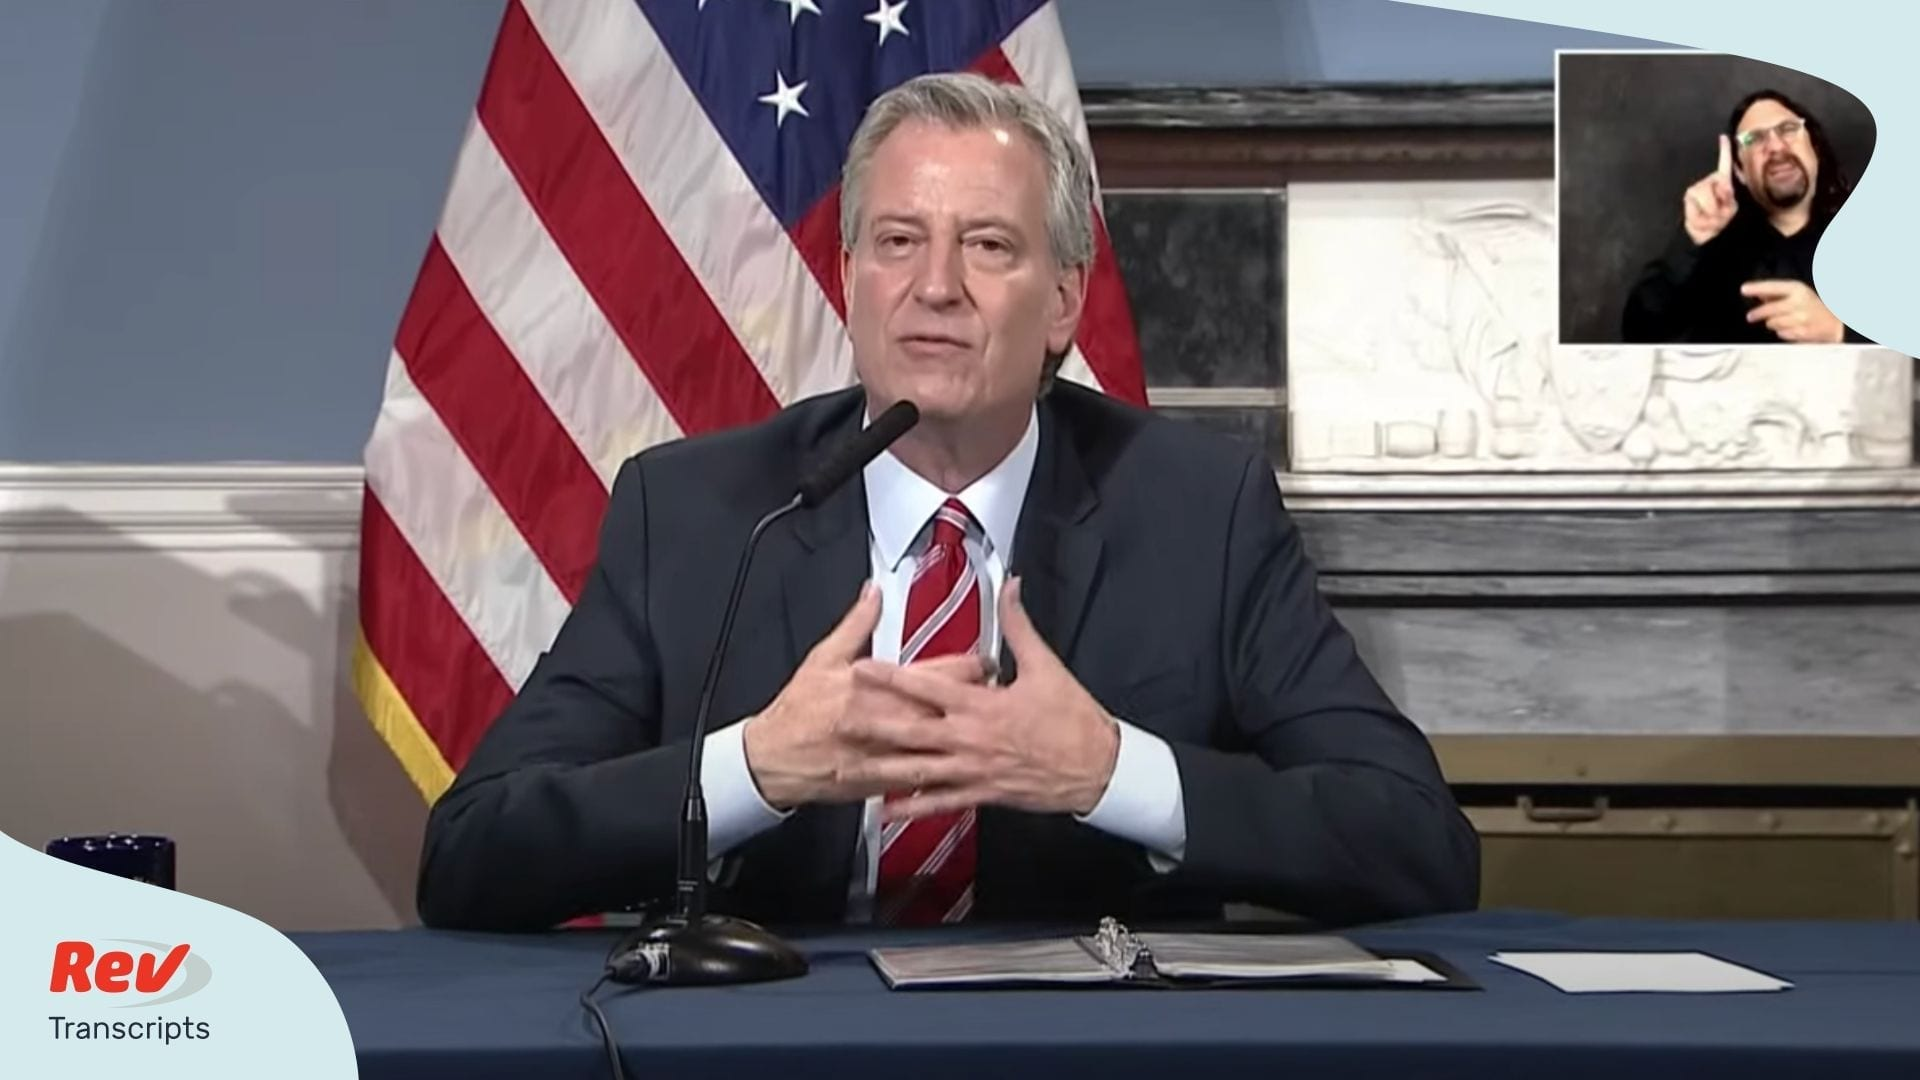 Bill de Blasio April 21 Briefing